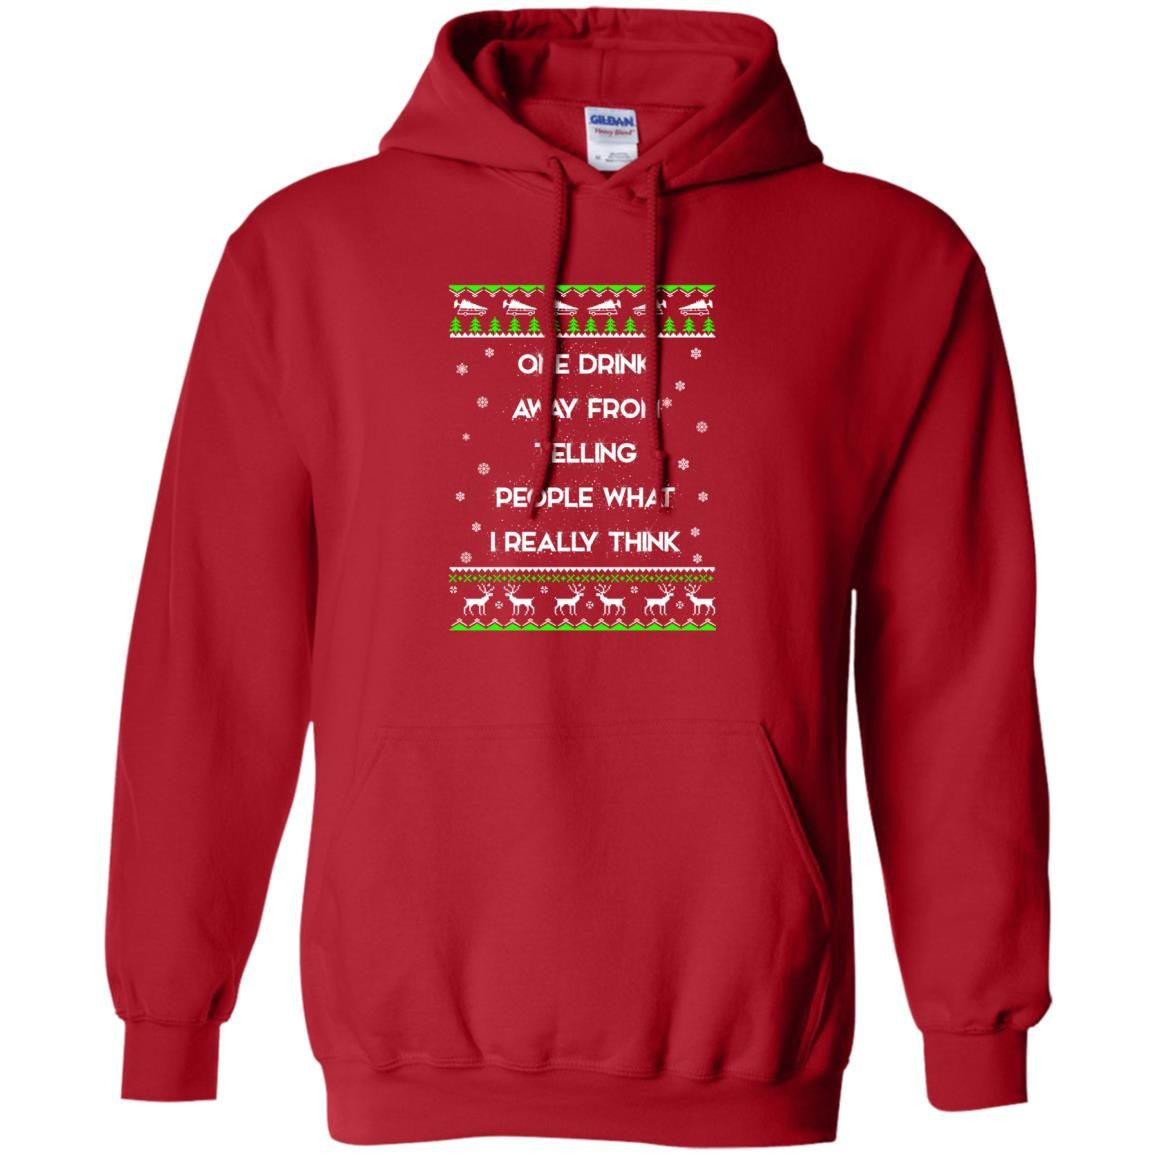 image 1558 - One drink away from telling people what I really think ugly Christmas sweater, hoodie